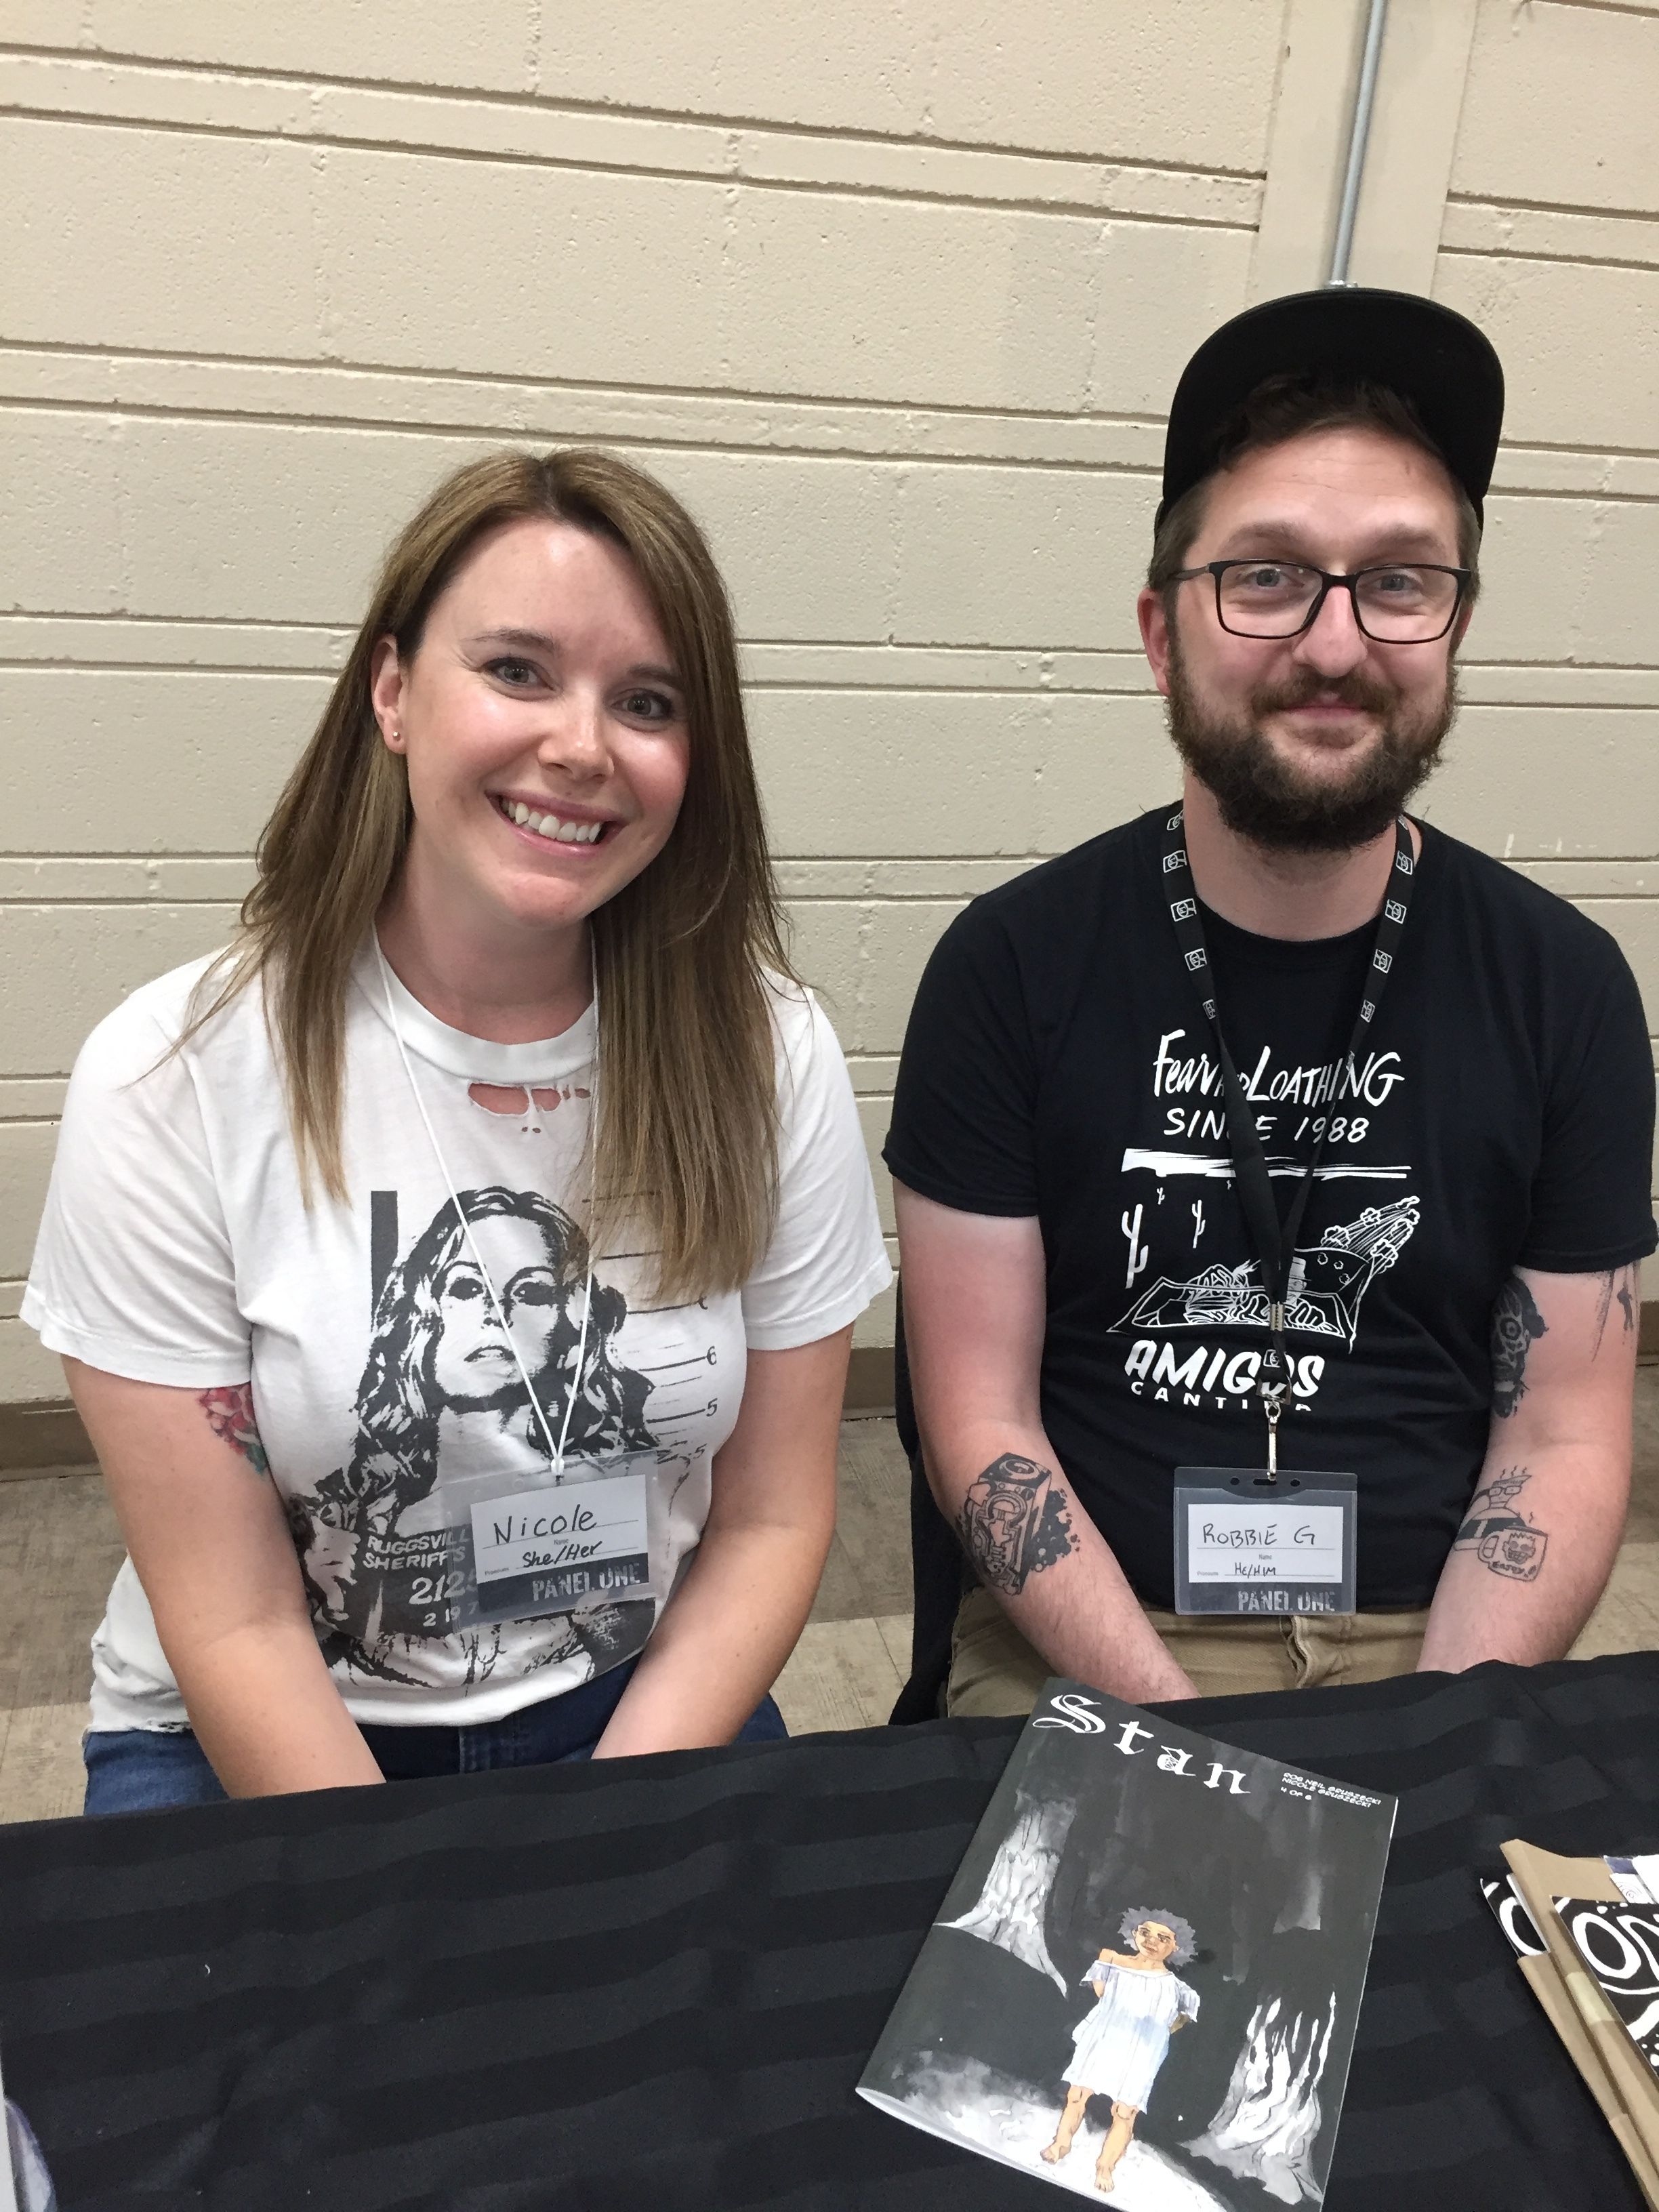 Nicole Gruszecki and Rob Gruszecki at the 2019 Panel One Comic Creator Festival  ( Photo credit: Chris Doucher/GeekNerdNet )